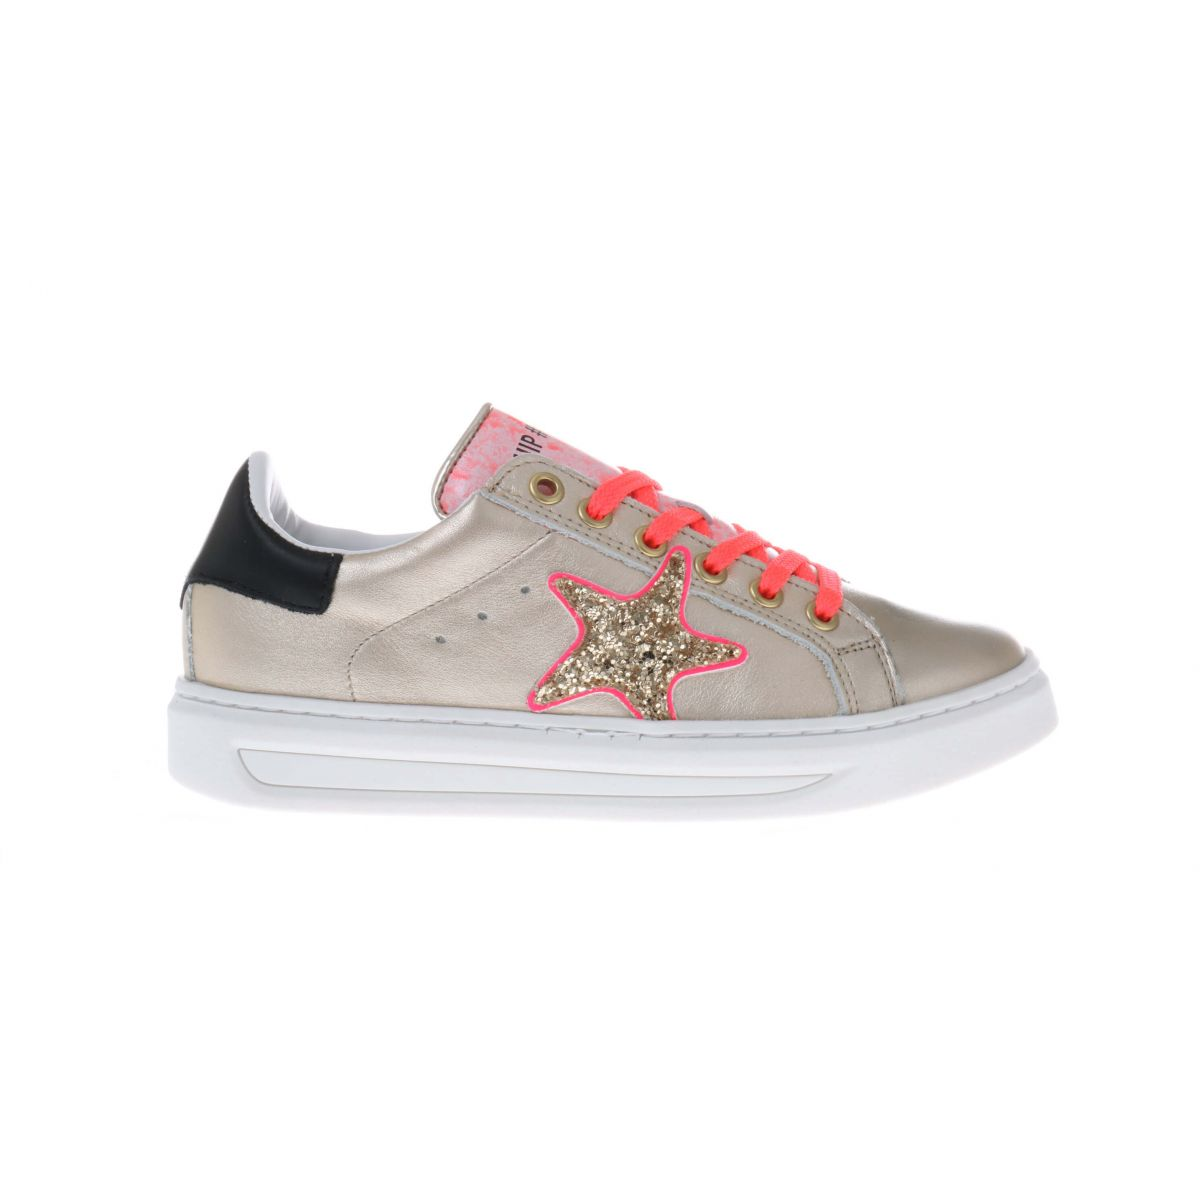 HIP H1790 Sneakers Goud Roze